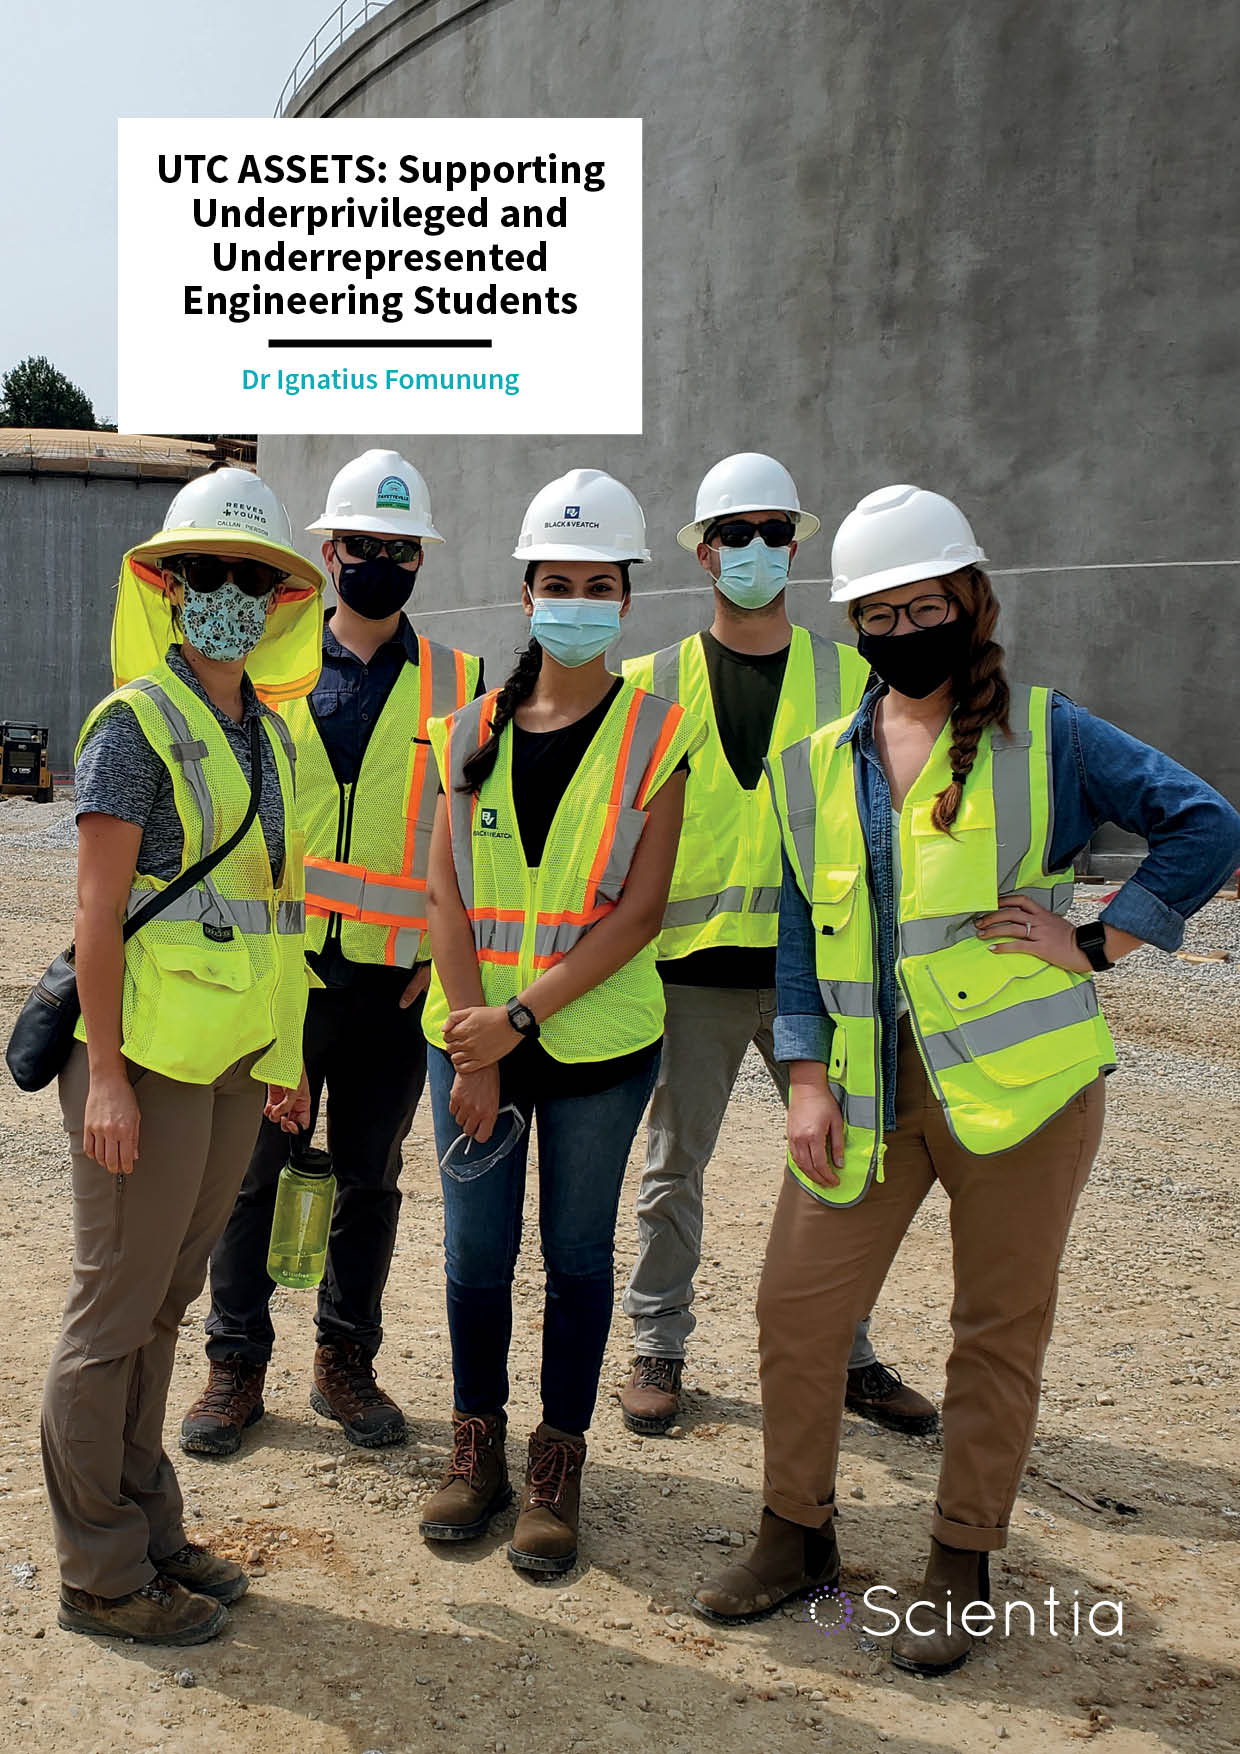 UTC ASSETS: Supporting Underprivileged and Underrepresented Engineering Students